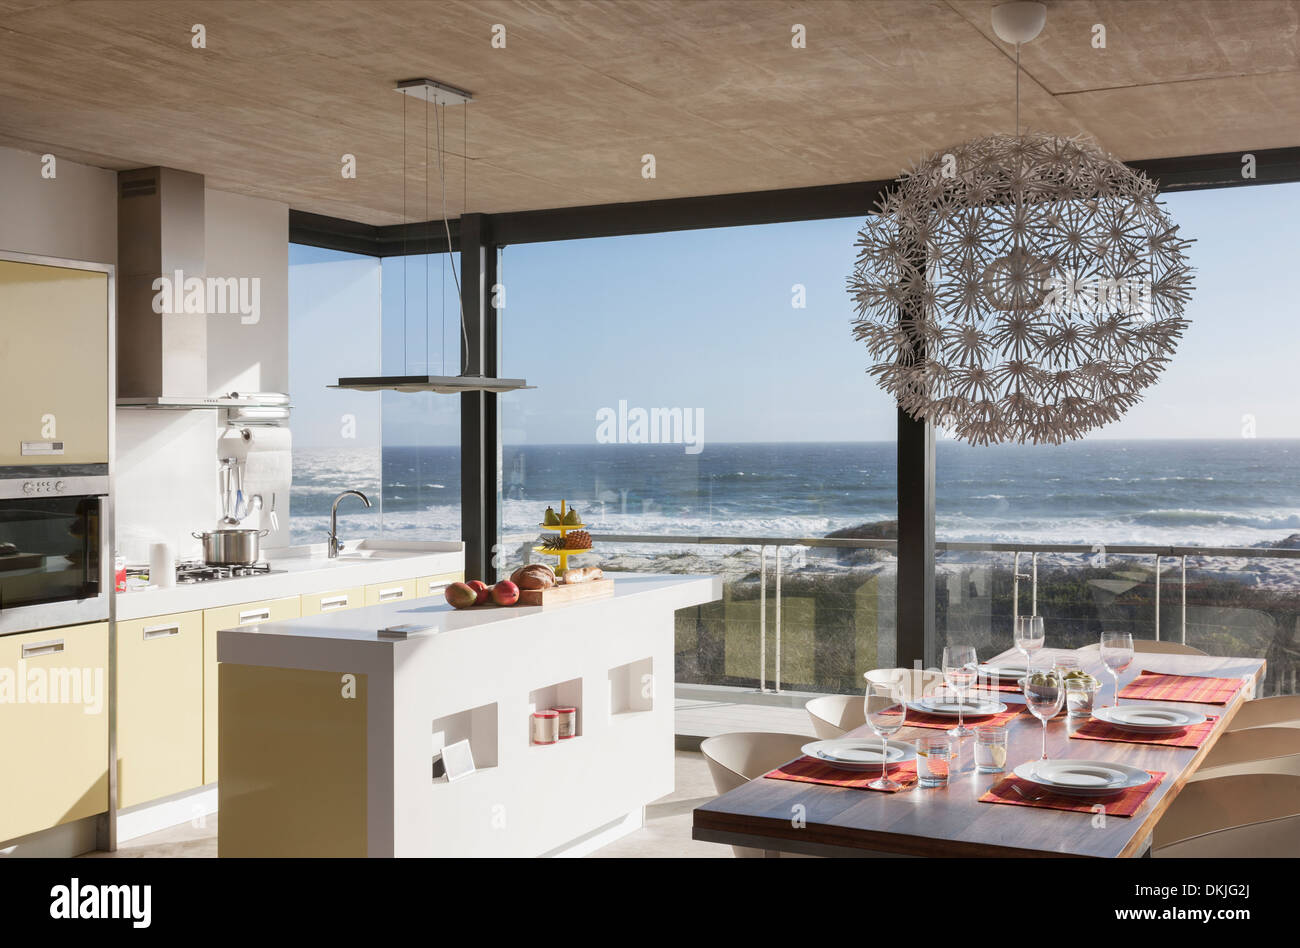 Kitchen And Dining Room In Modern House Overlooking Ocean